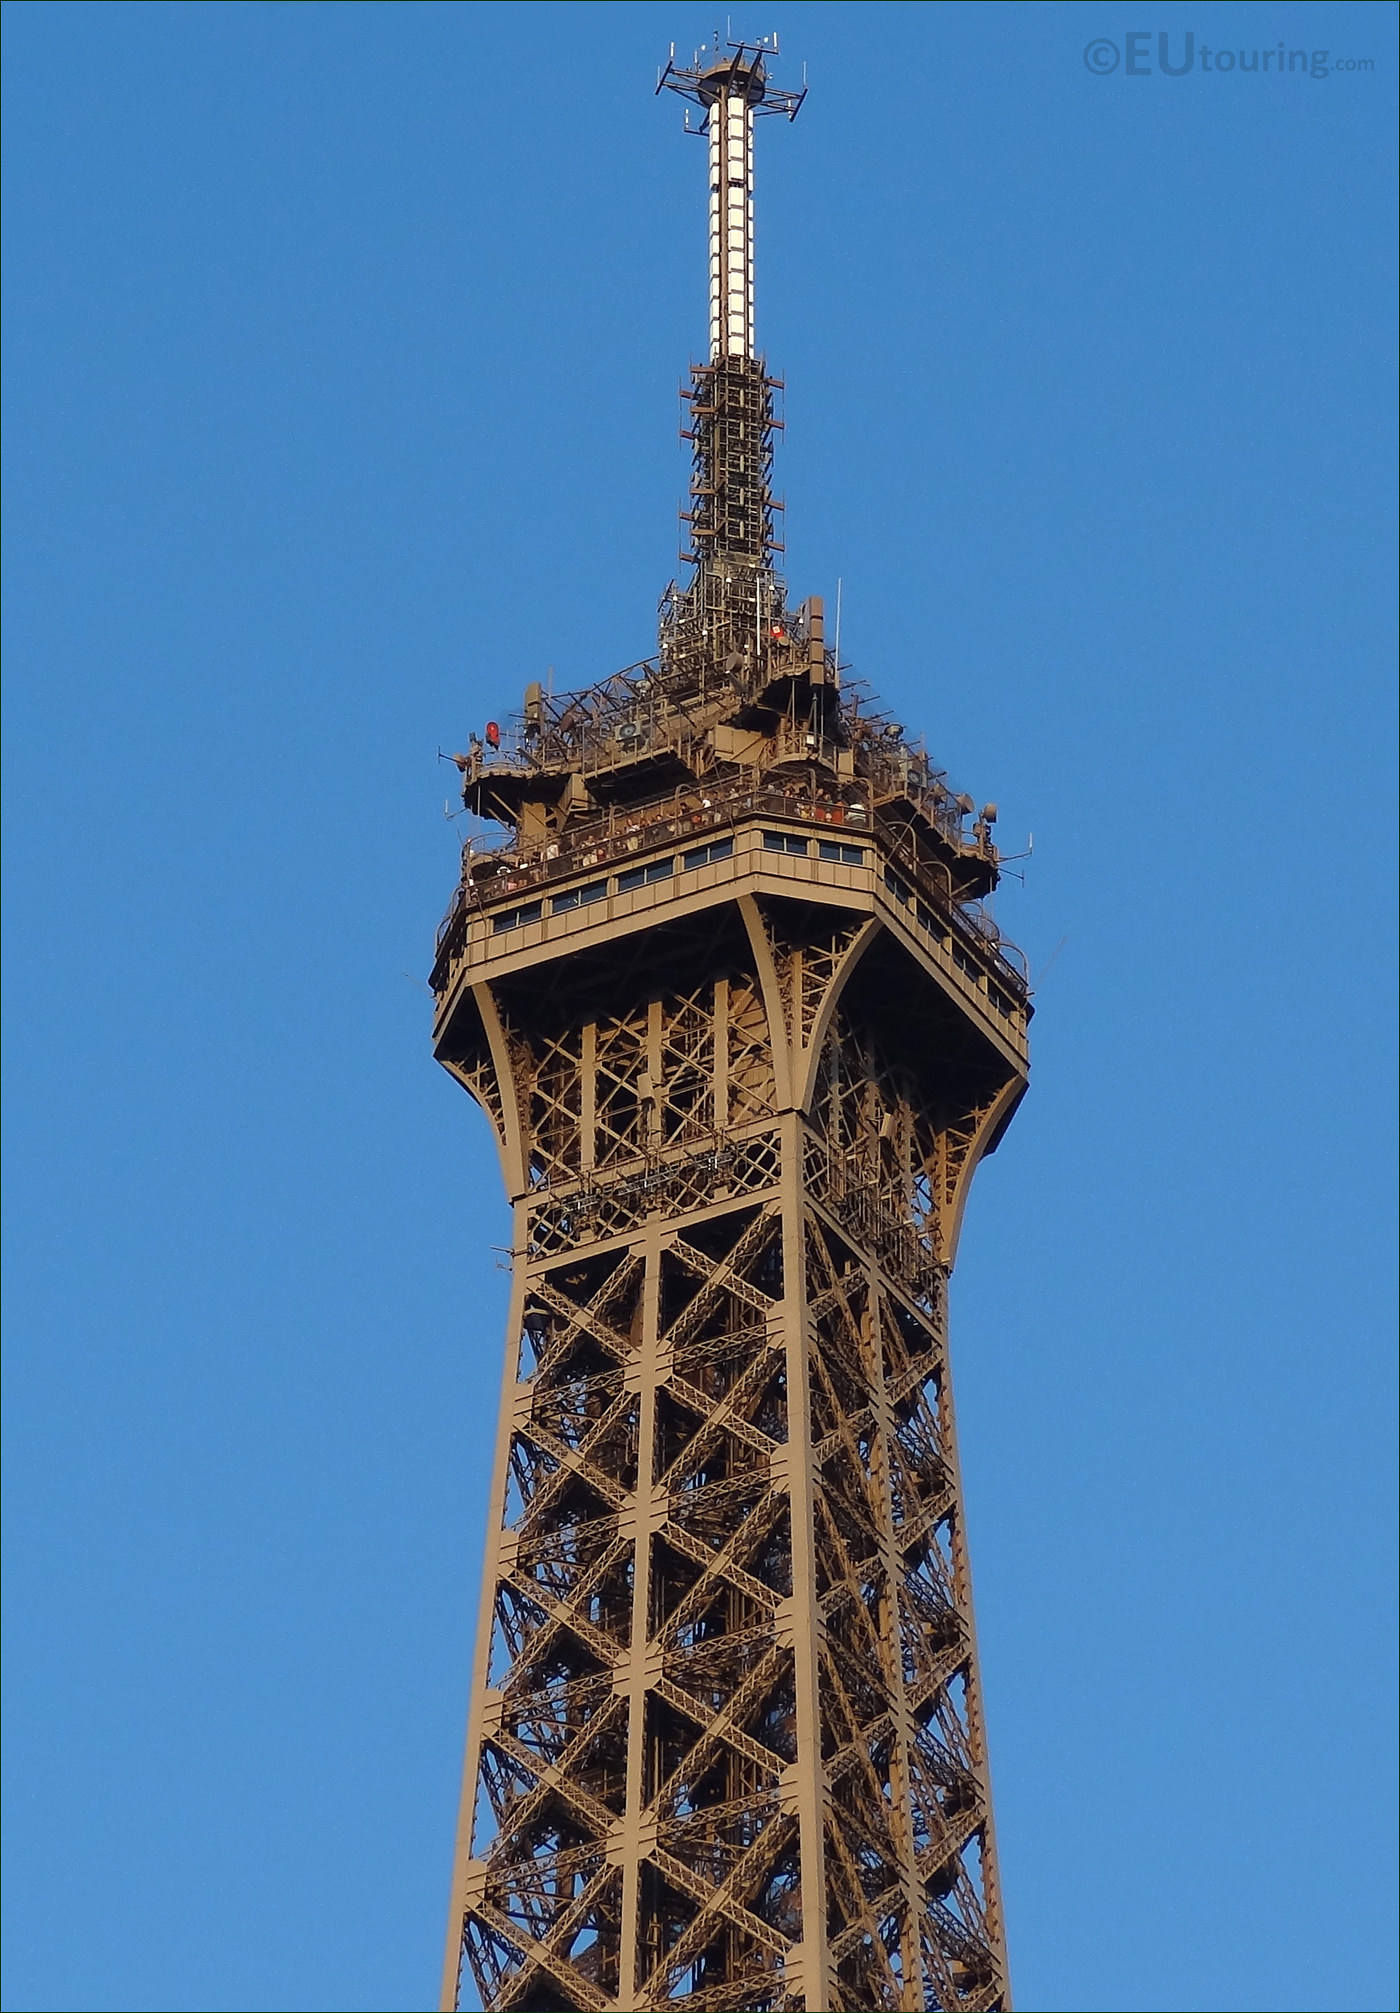 Steps To Eiffel Tower Top : Hd photo of the eiffel tower top section and viewing